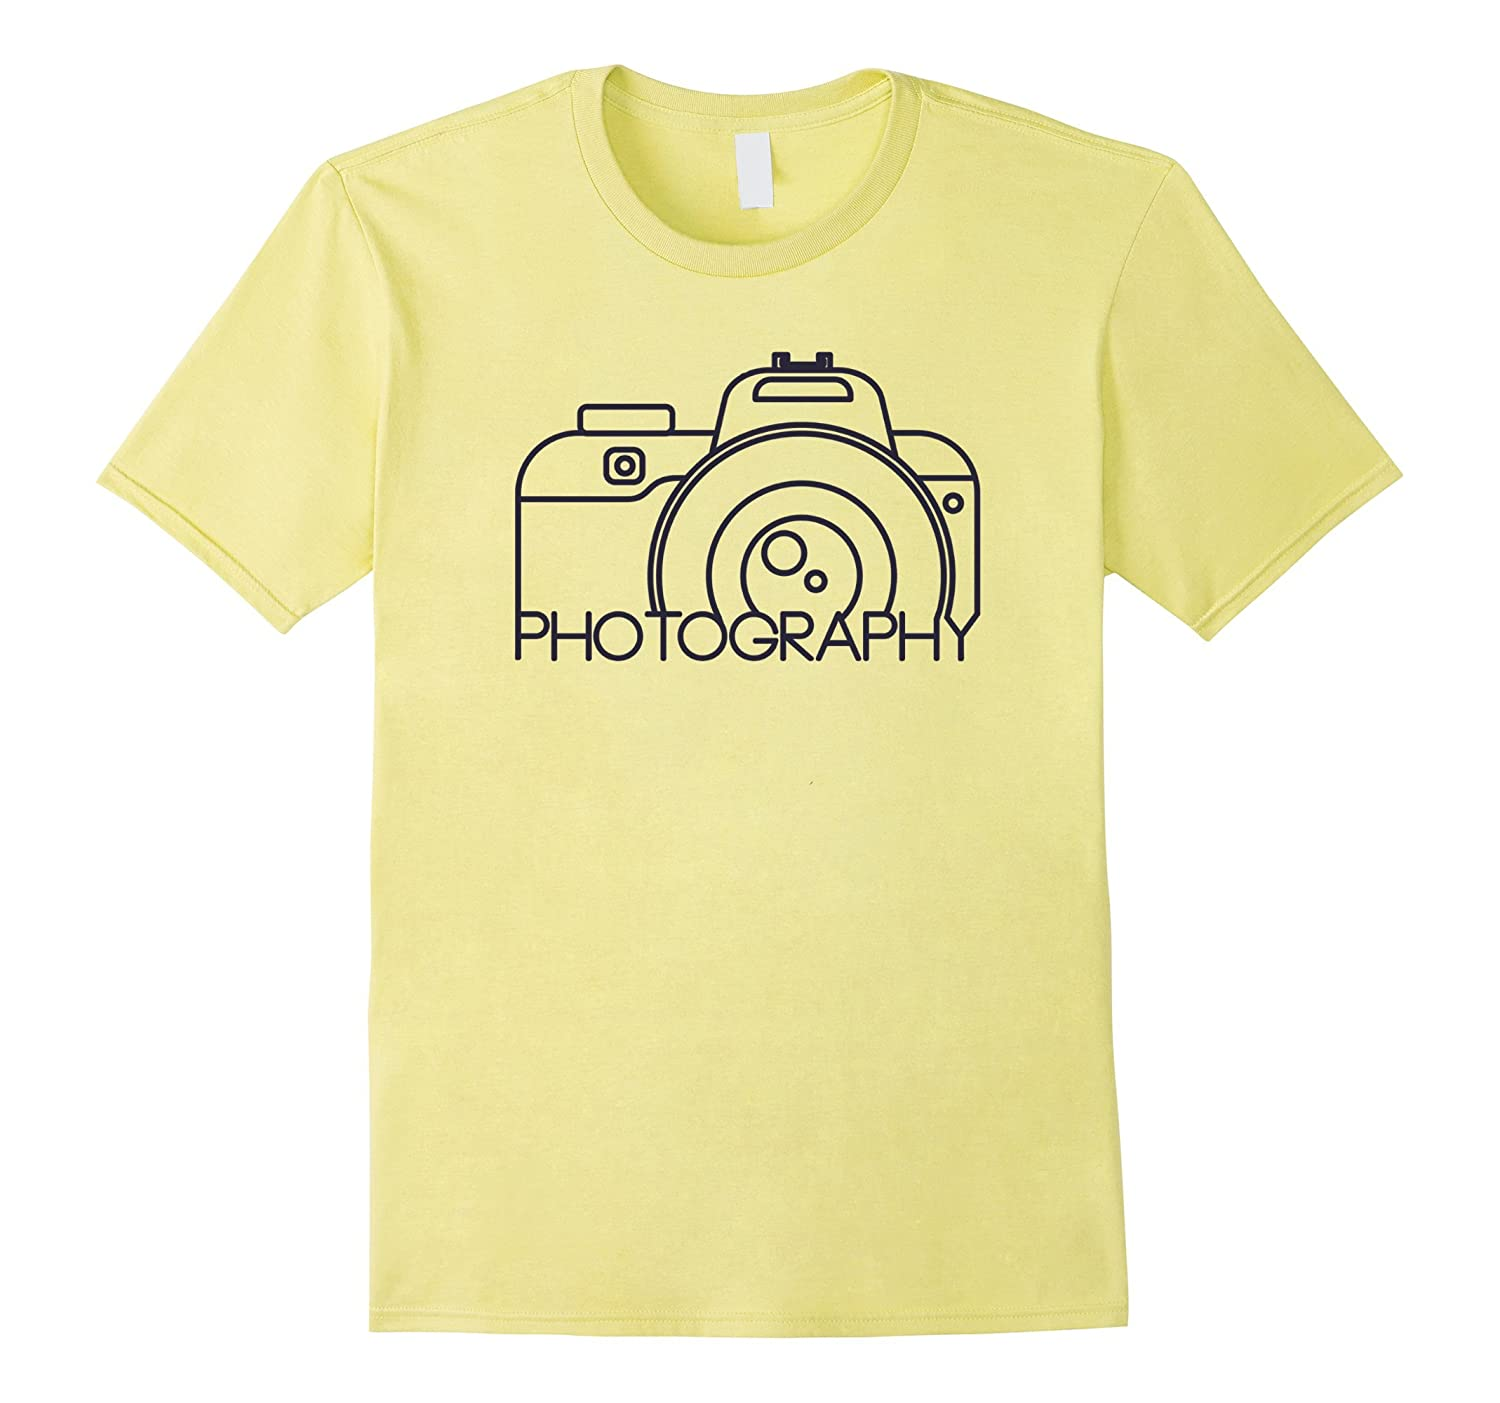 5ed2614bd4 Photography T-shirt Cool Camera Photographer Top Tee-ANZ ⋆ Anztshirt